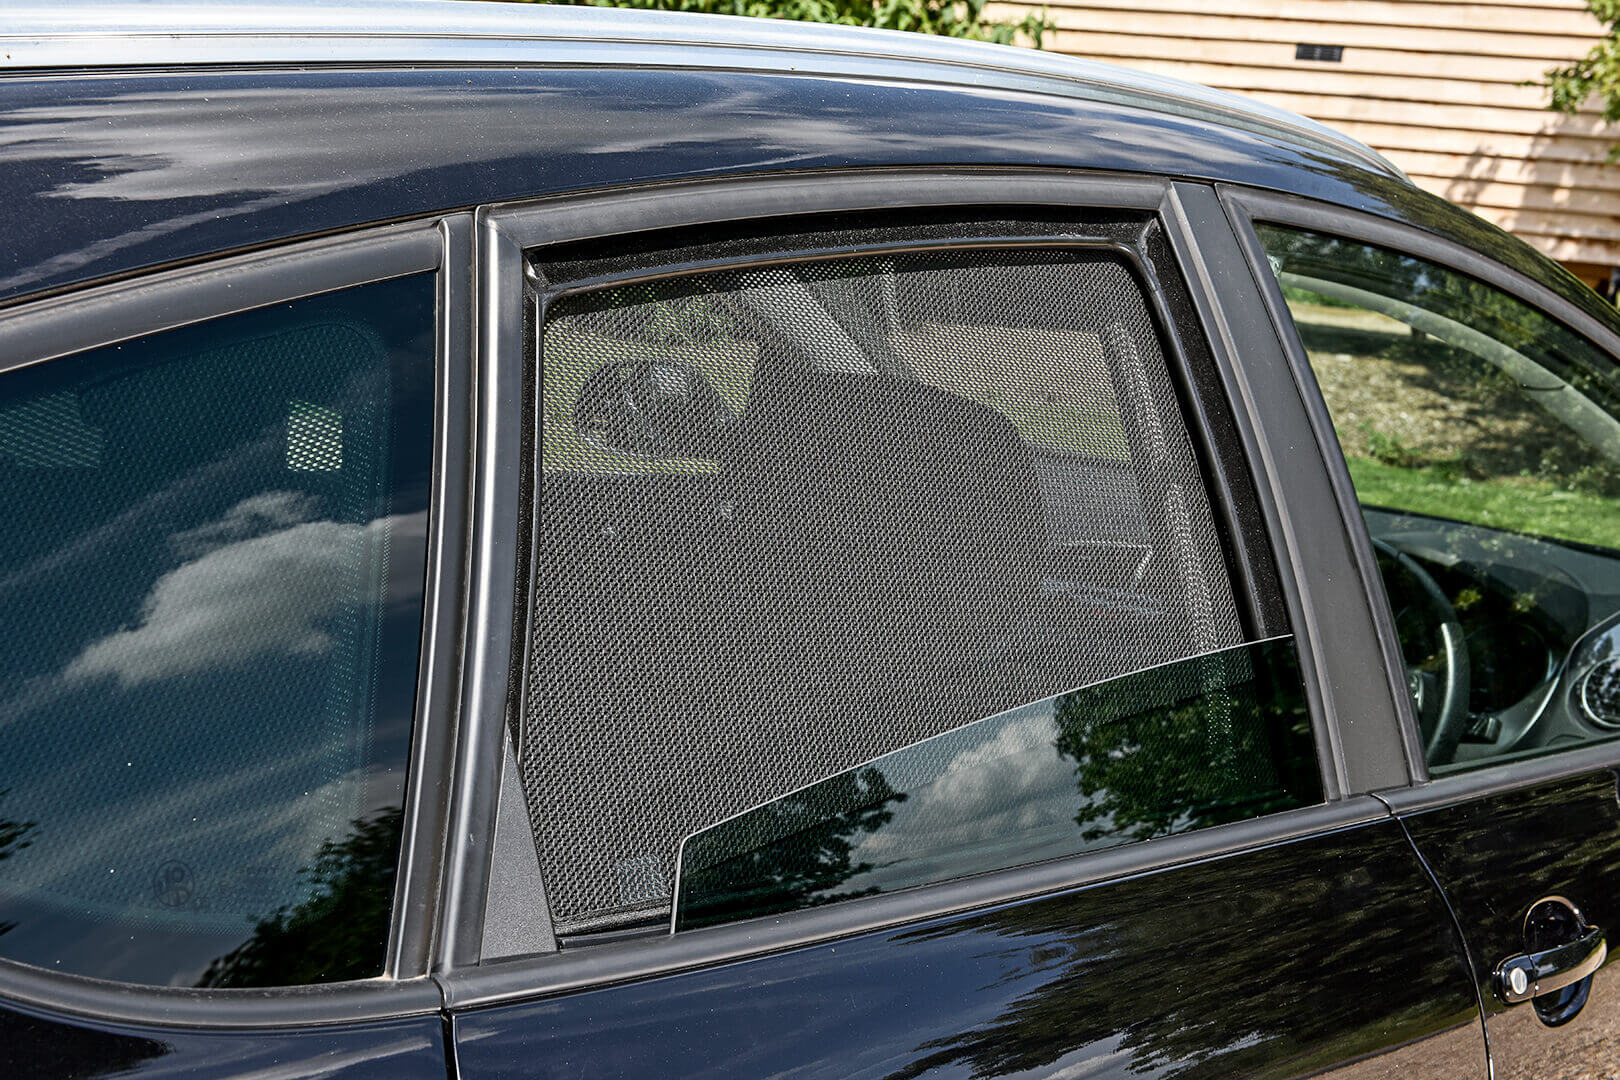 UV Privacy Car Shades (Set of 6) Seat Altea XL 5dr 04-13